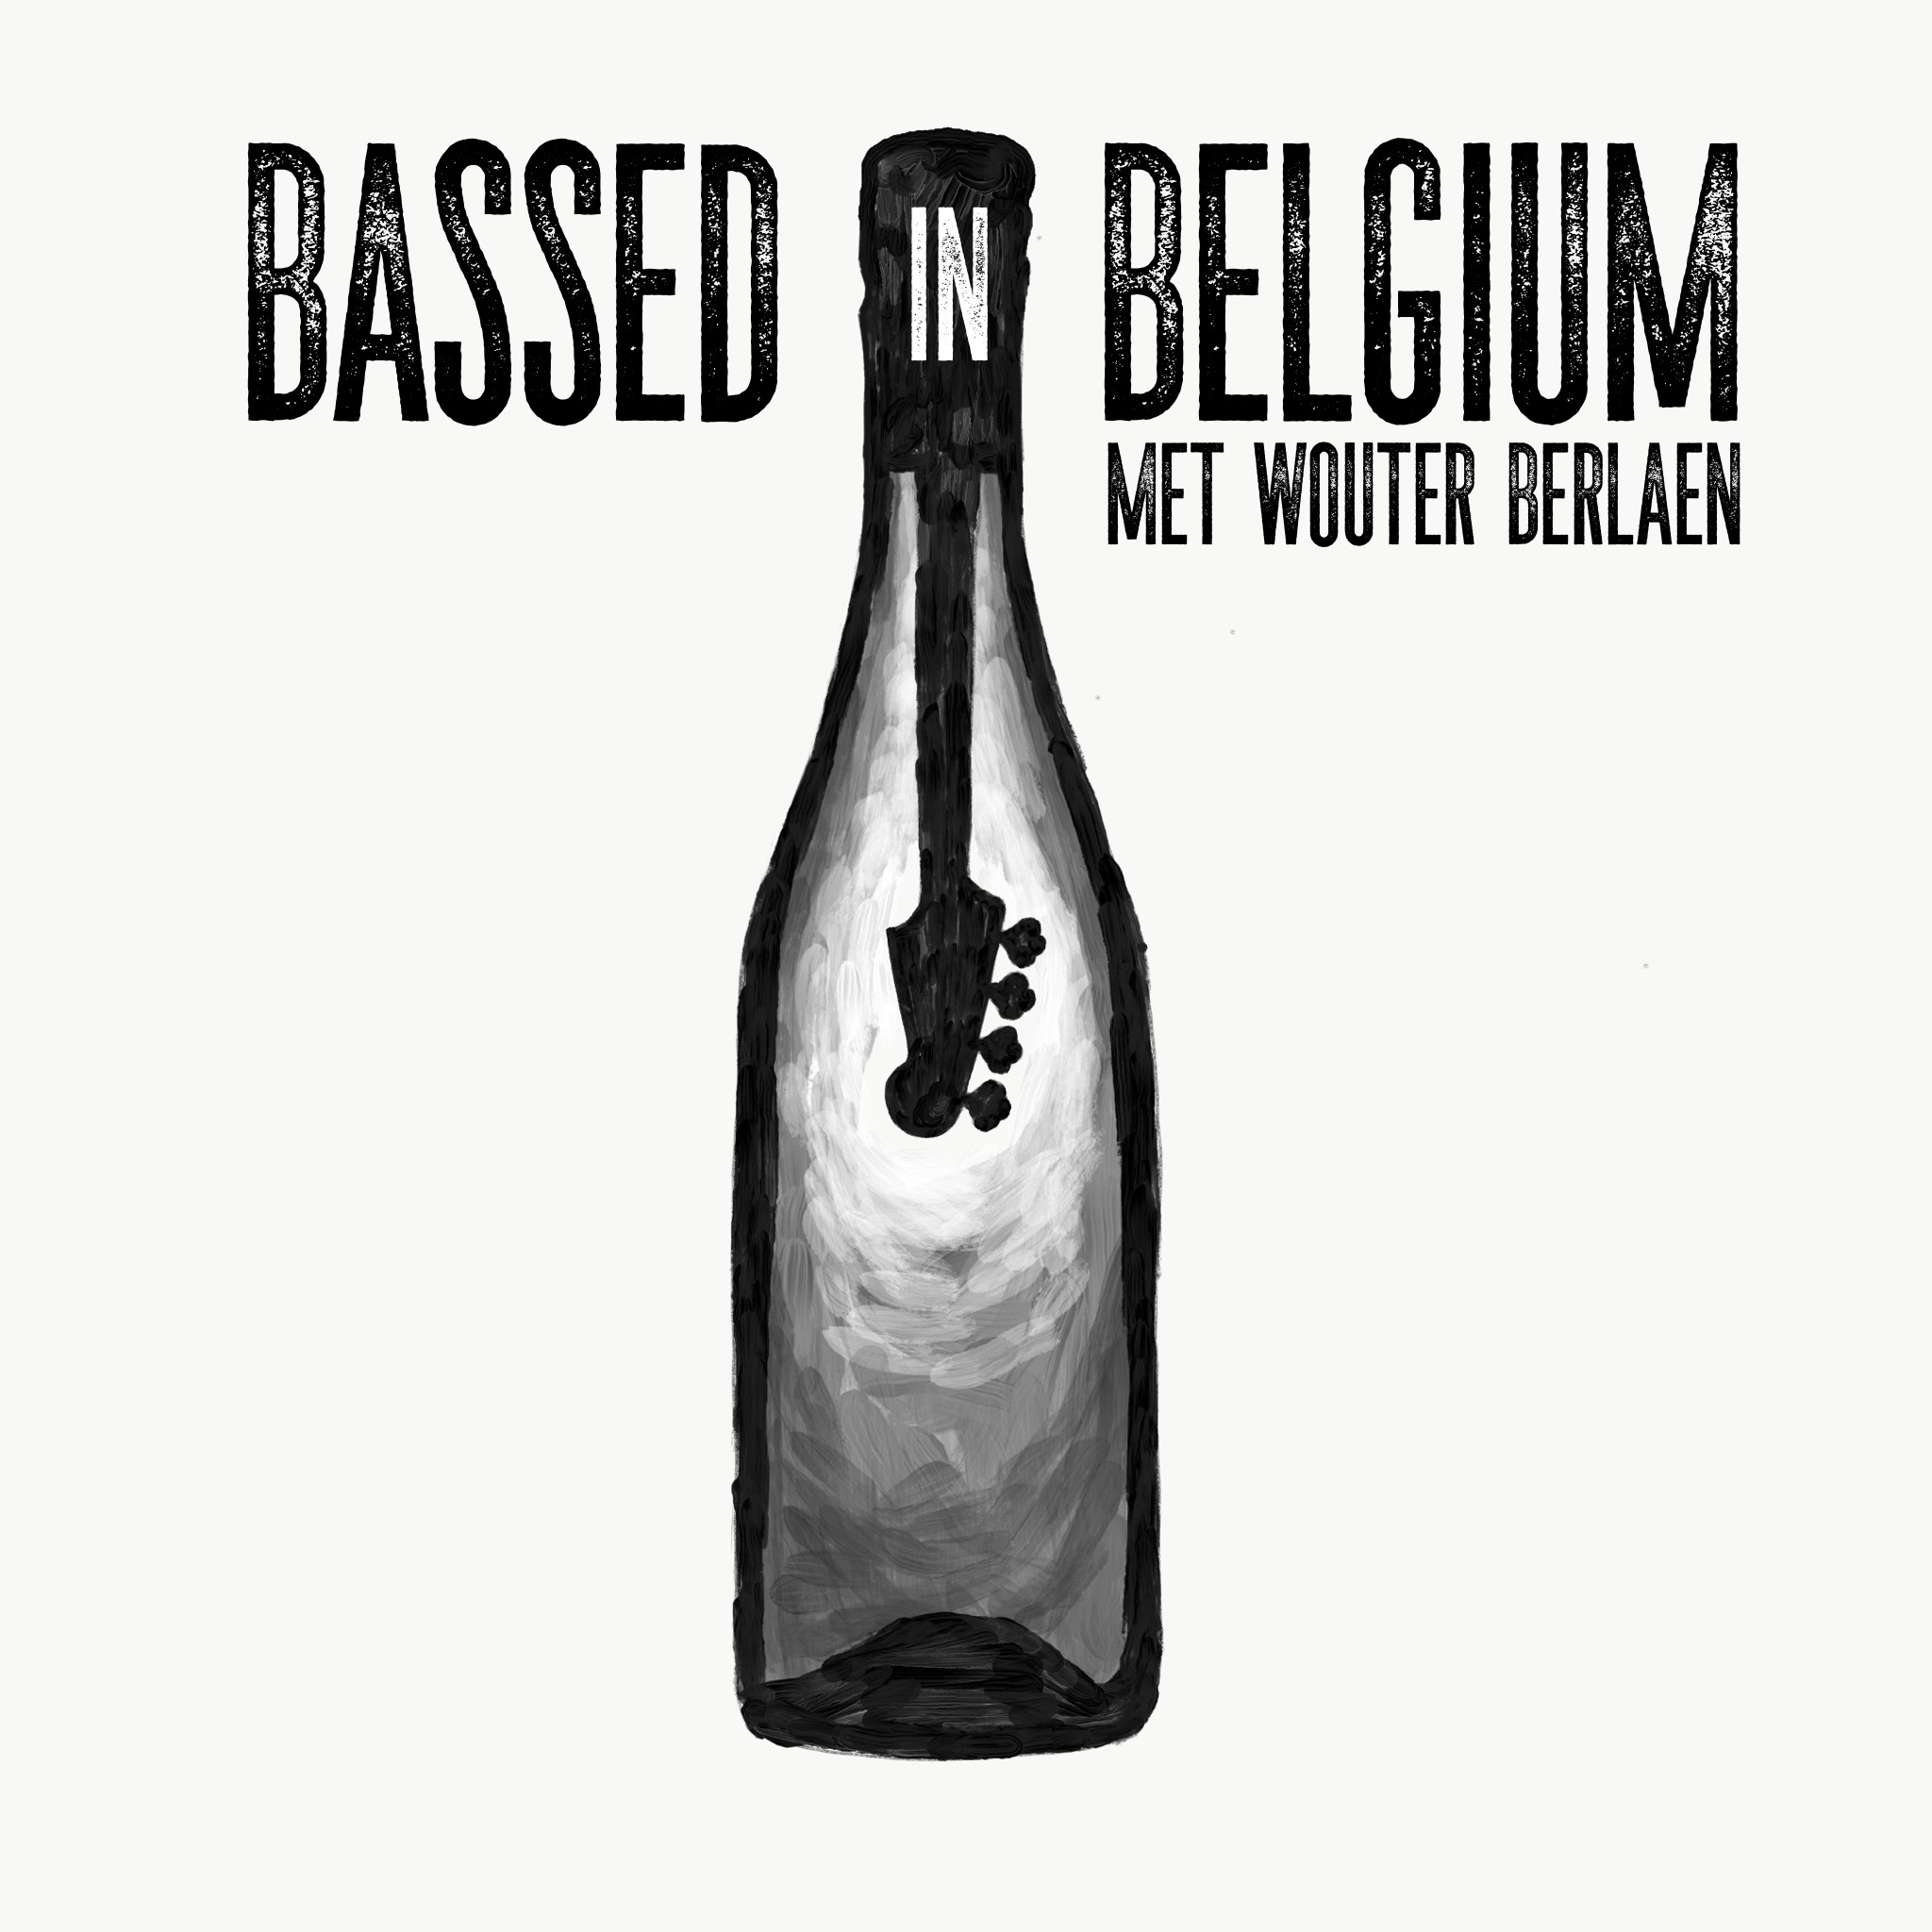 Bassed in Belgium